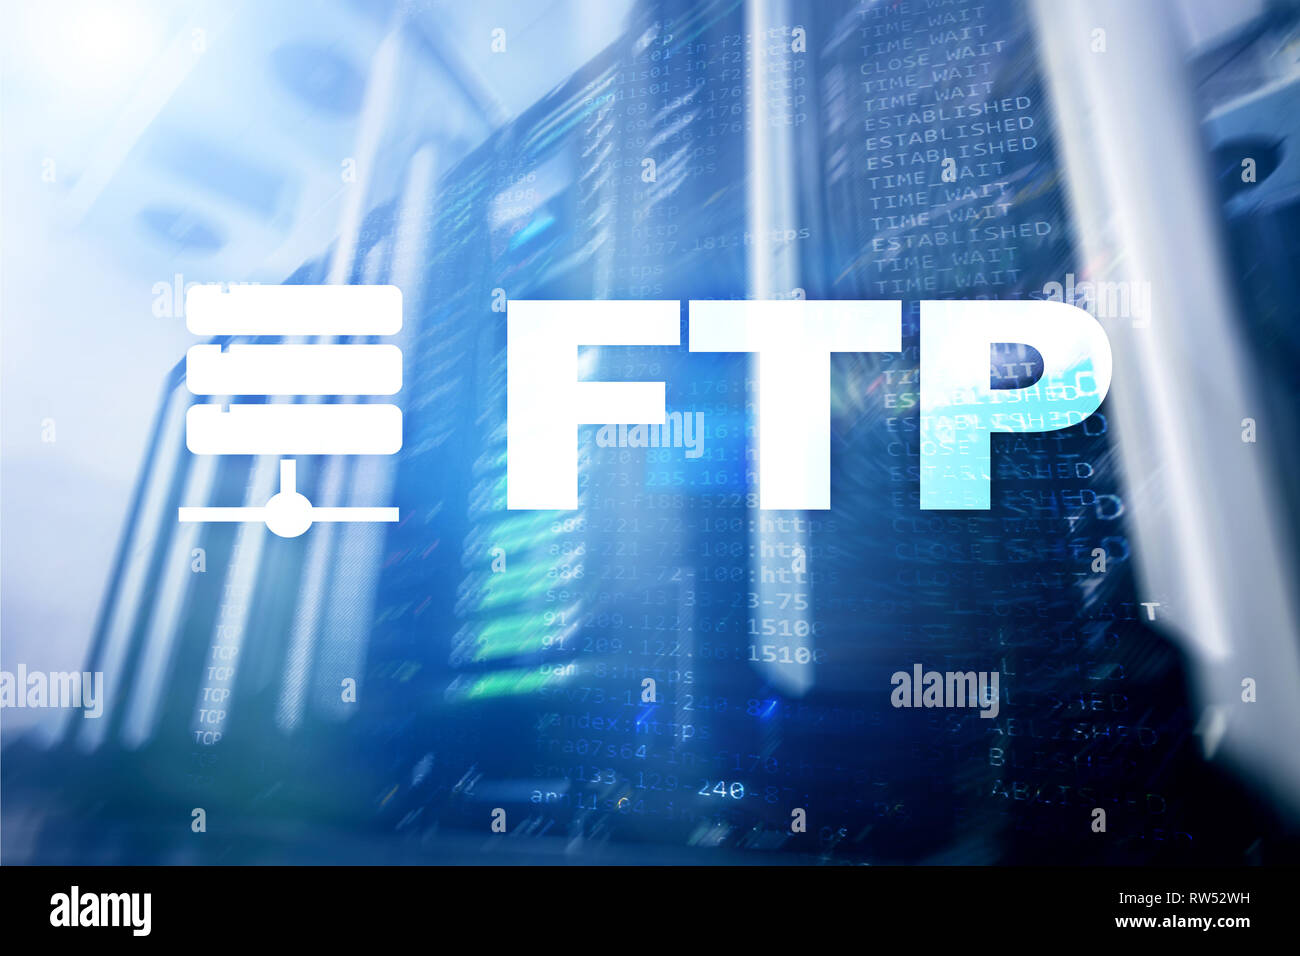 FTP - File transfer protocol  Internet and communication